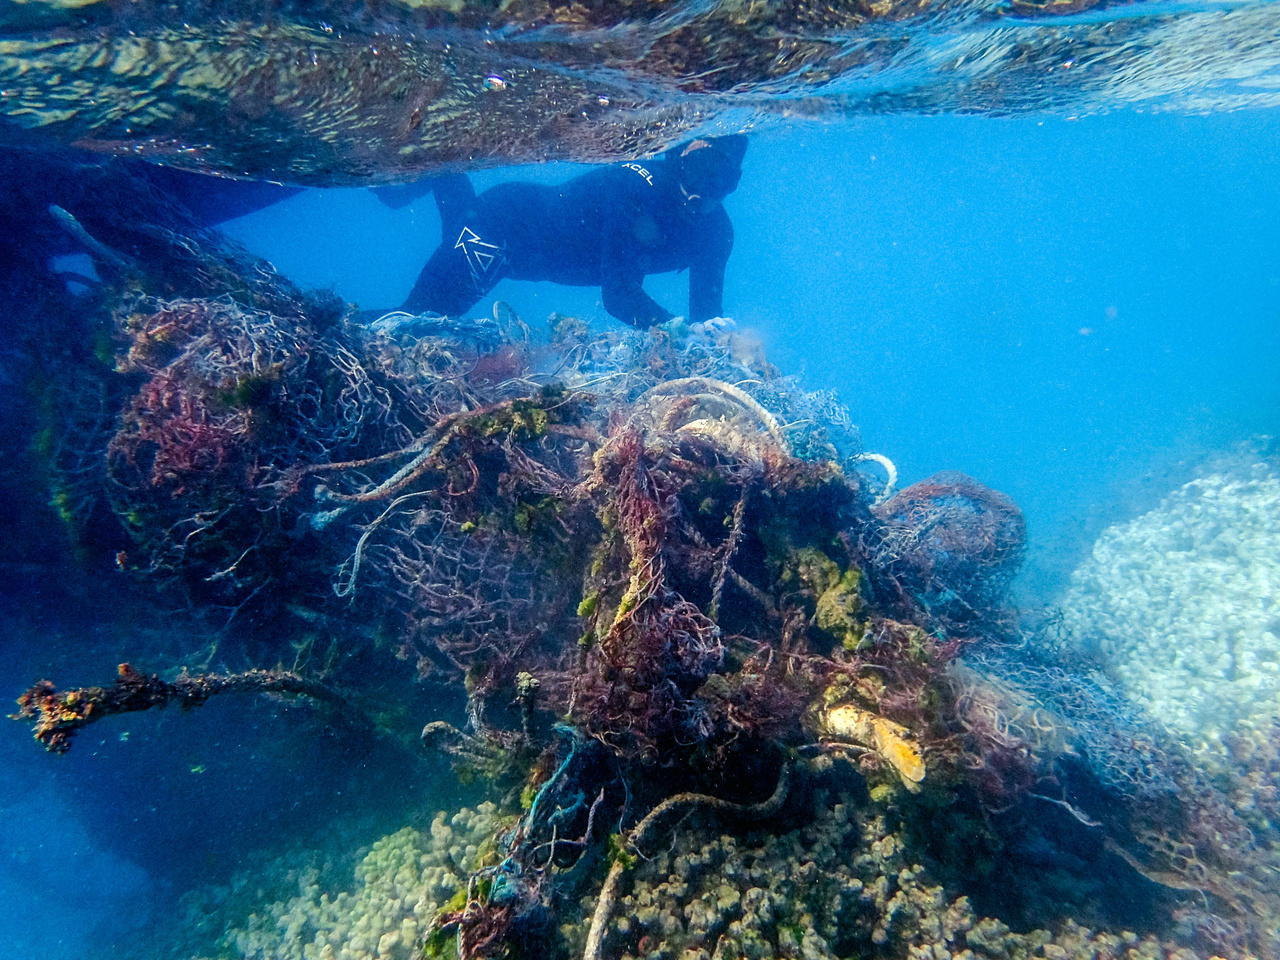 James Morioka dives down to carefully remove a monster net from the reef at Pearl and Hermes Atoll